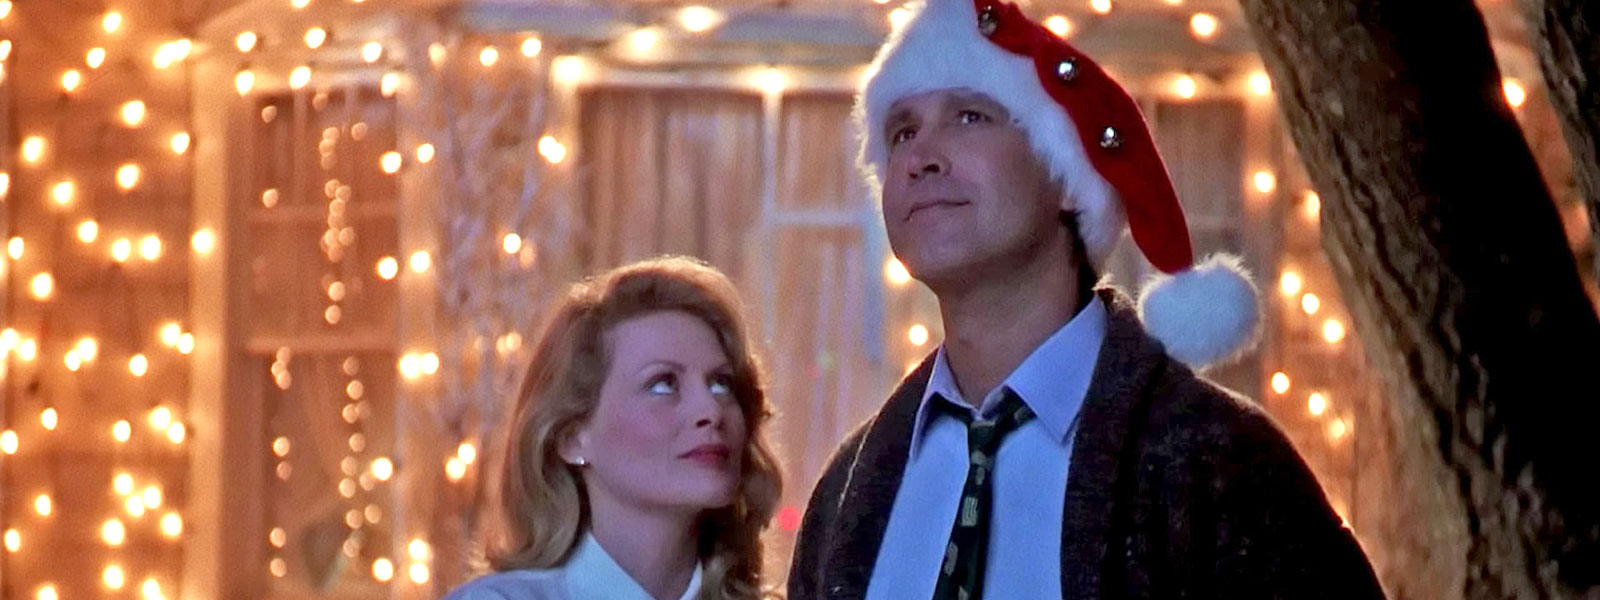 imagealt national lampoons christmas vacation - National Lampoons Christmas Vacation Pictures